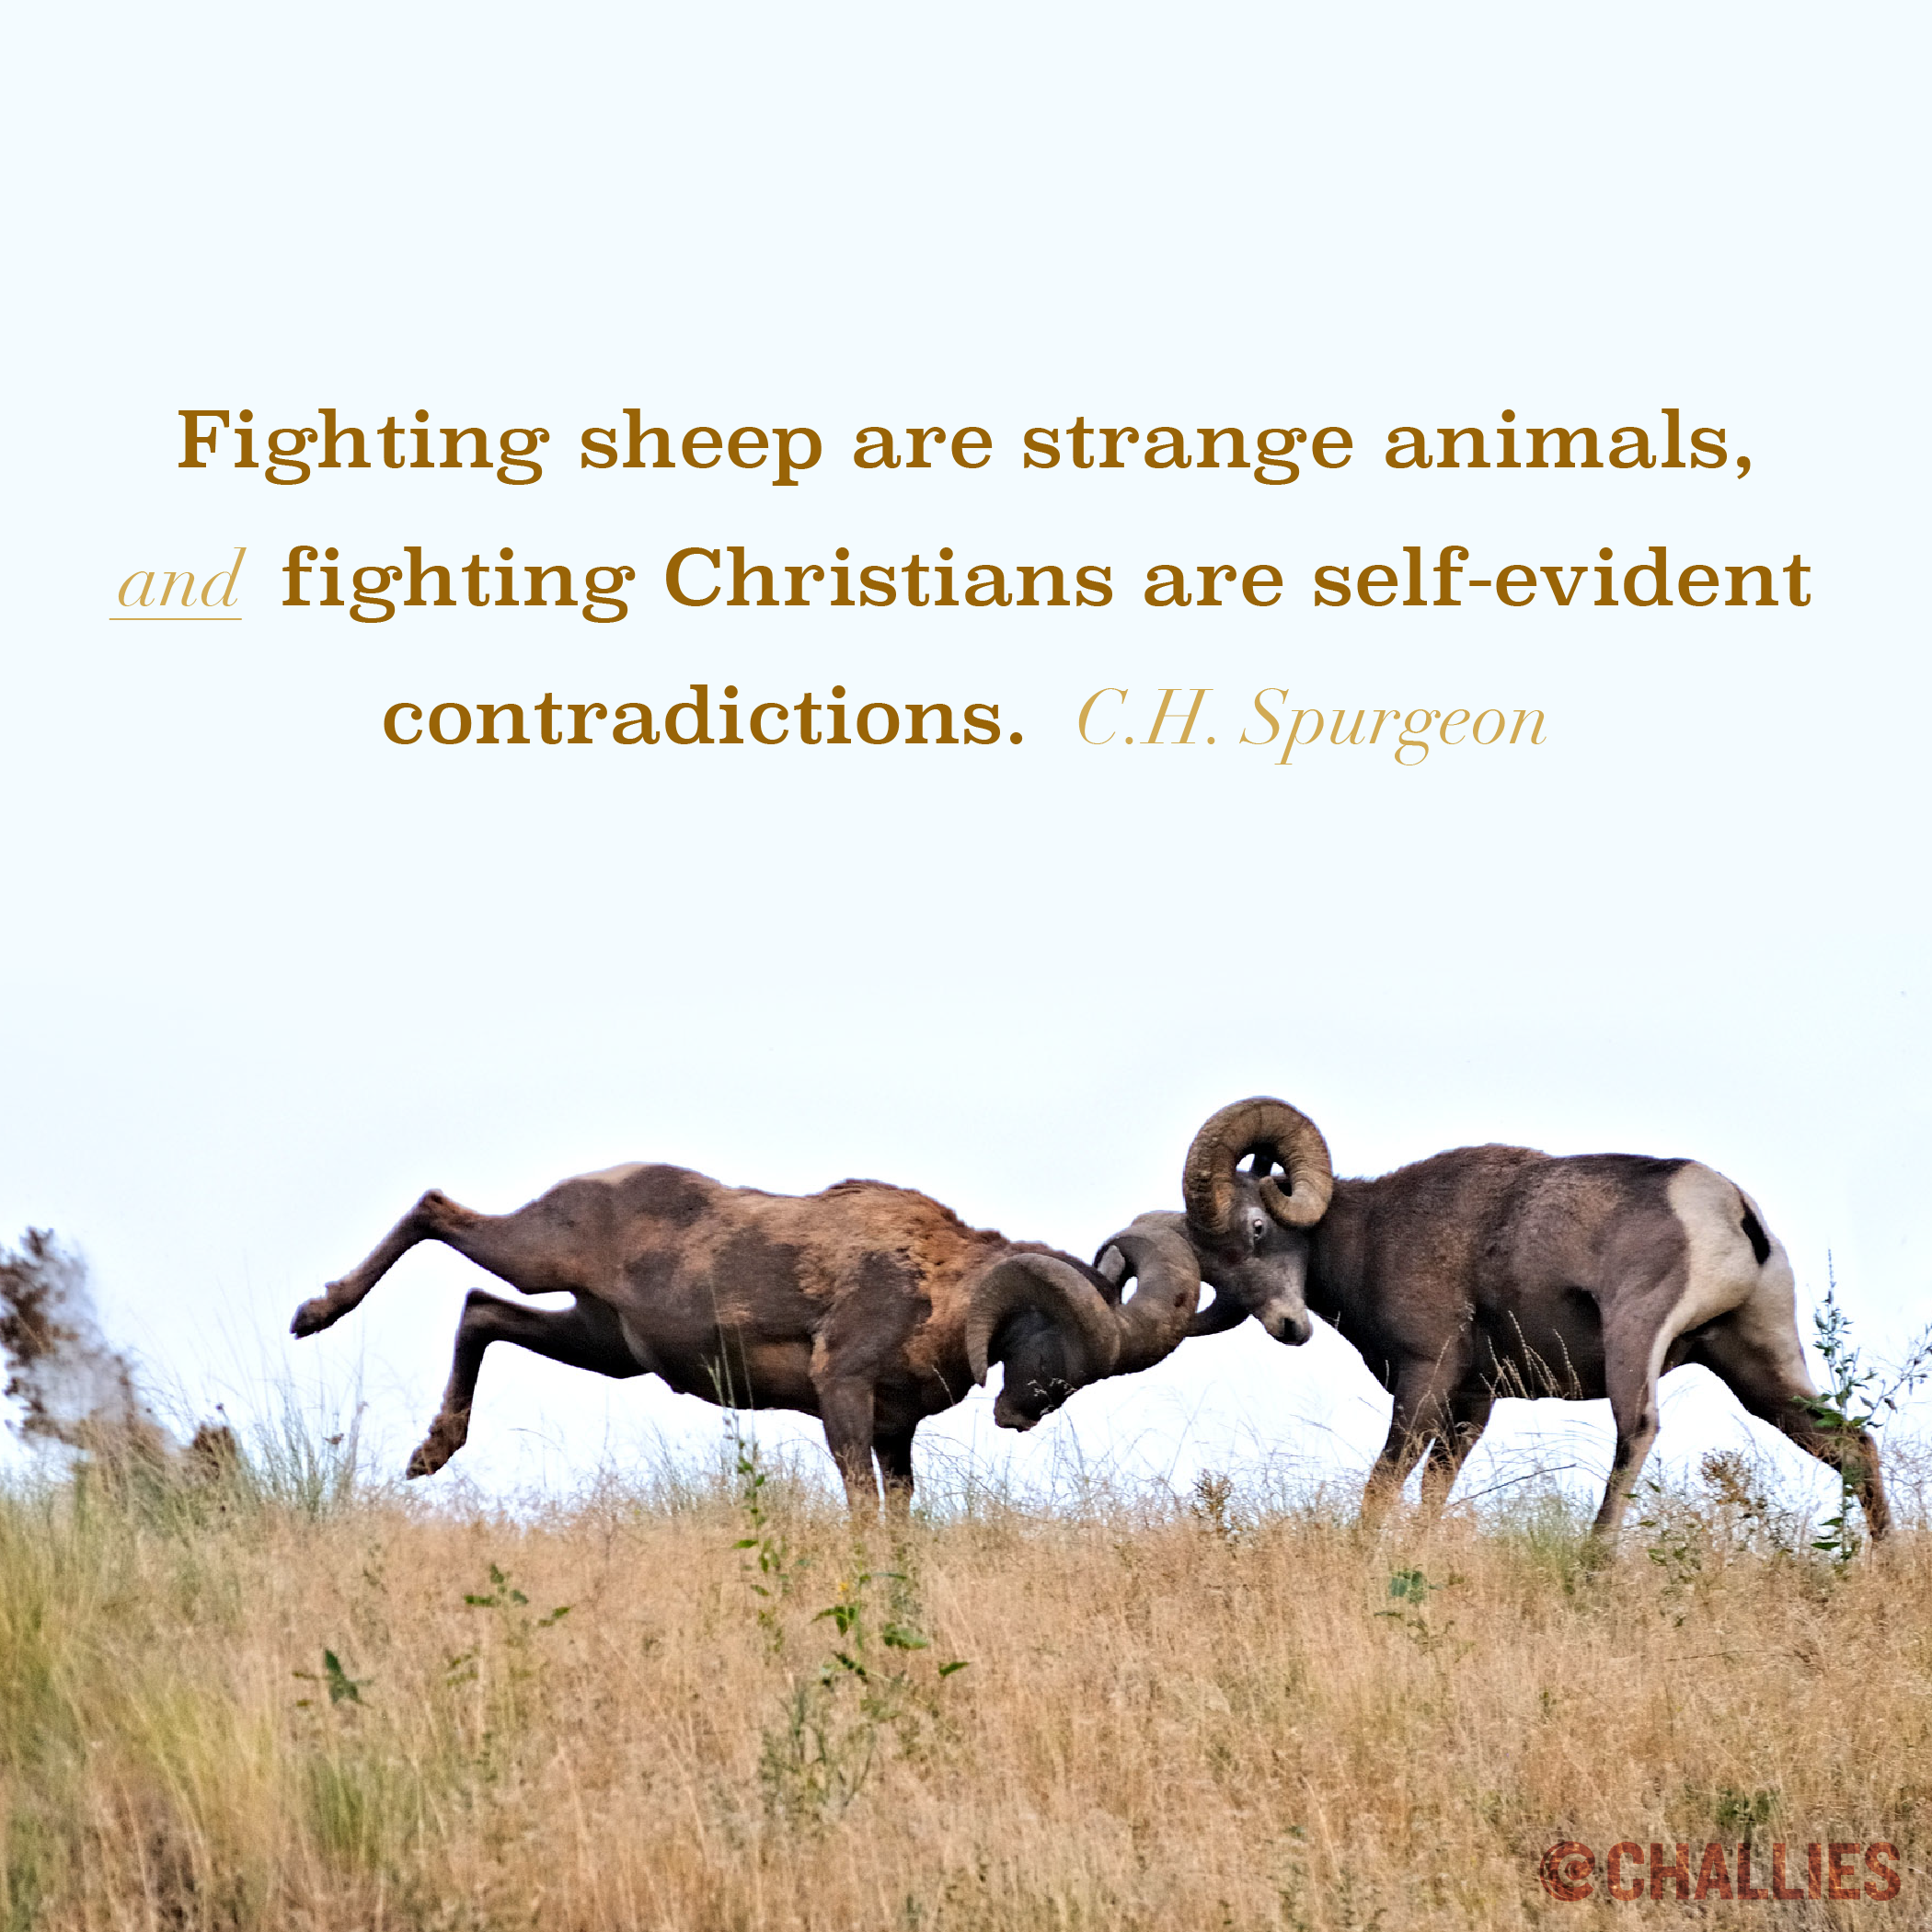 """""""Fighting sheep are strange animals, and fighting Christians are self-evident contradictions."""" (C.H. Spurgeon)"""